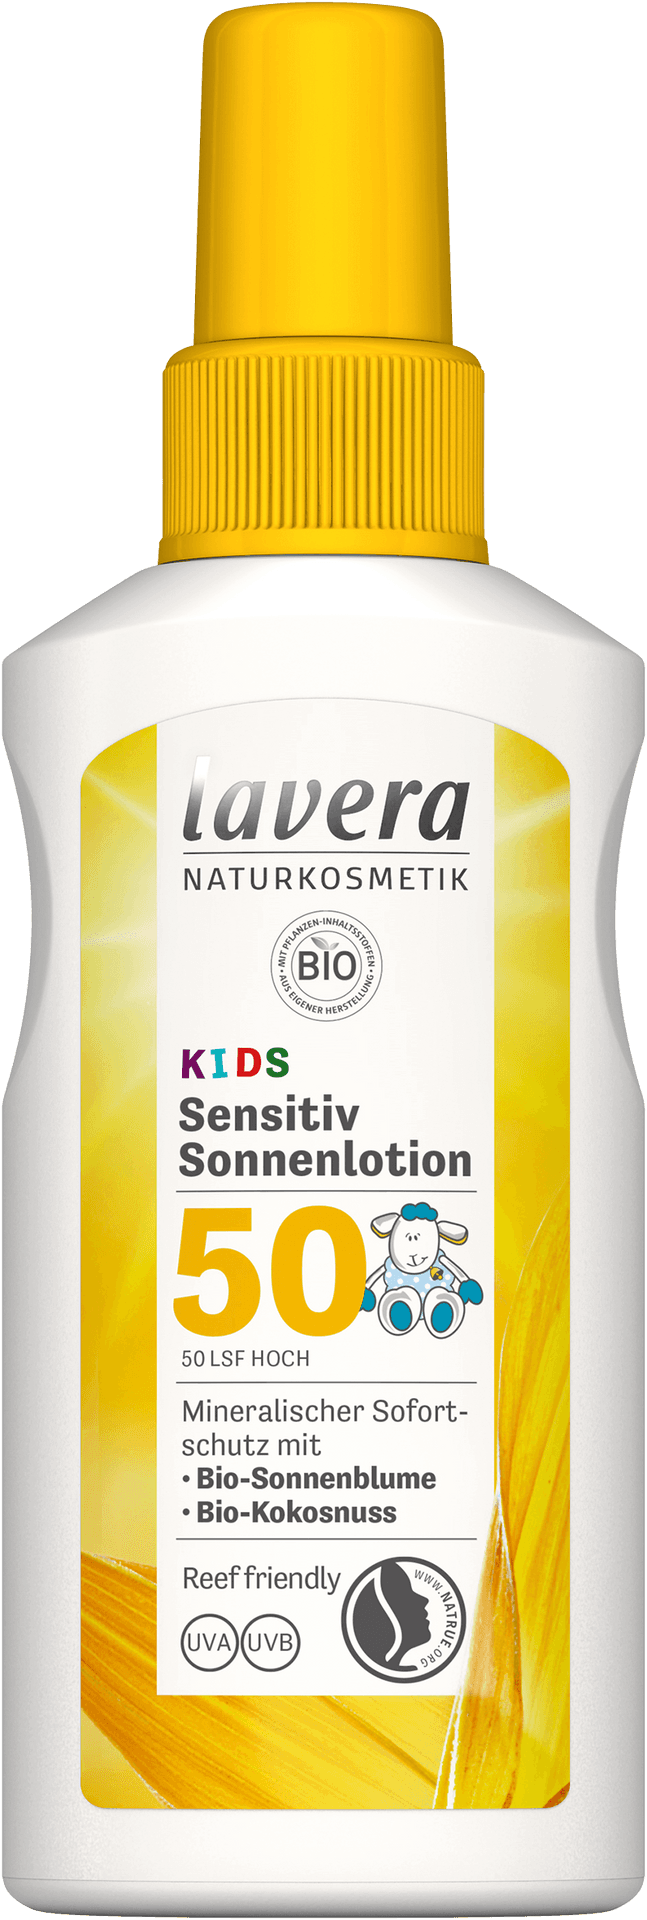 Lavera sensitiv Sonnenlotion